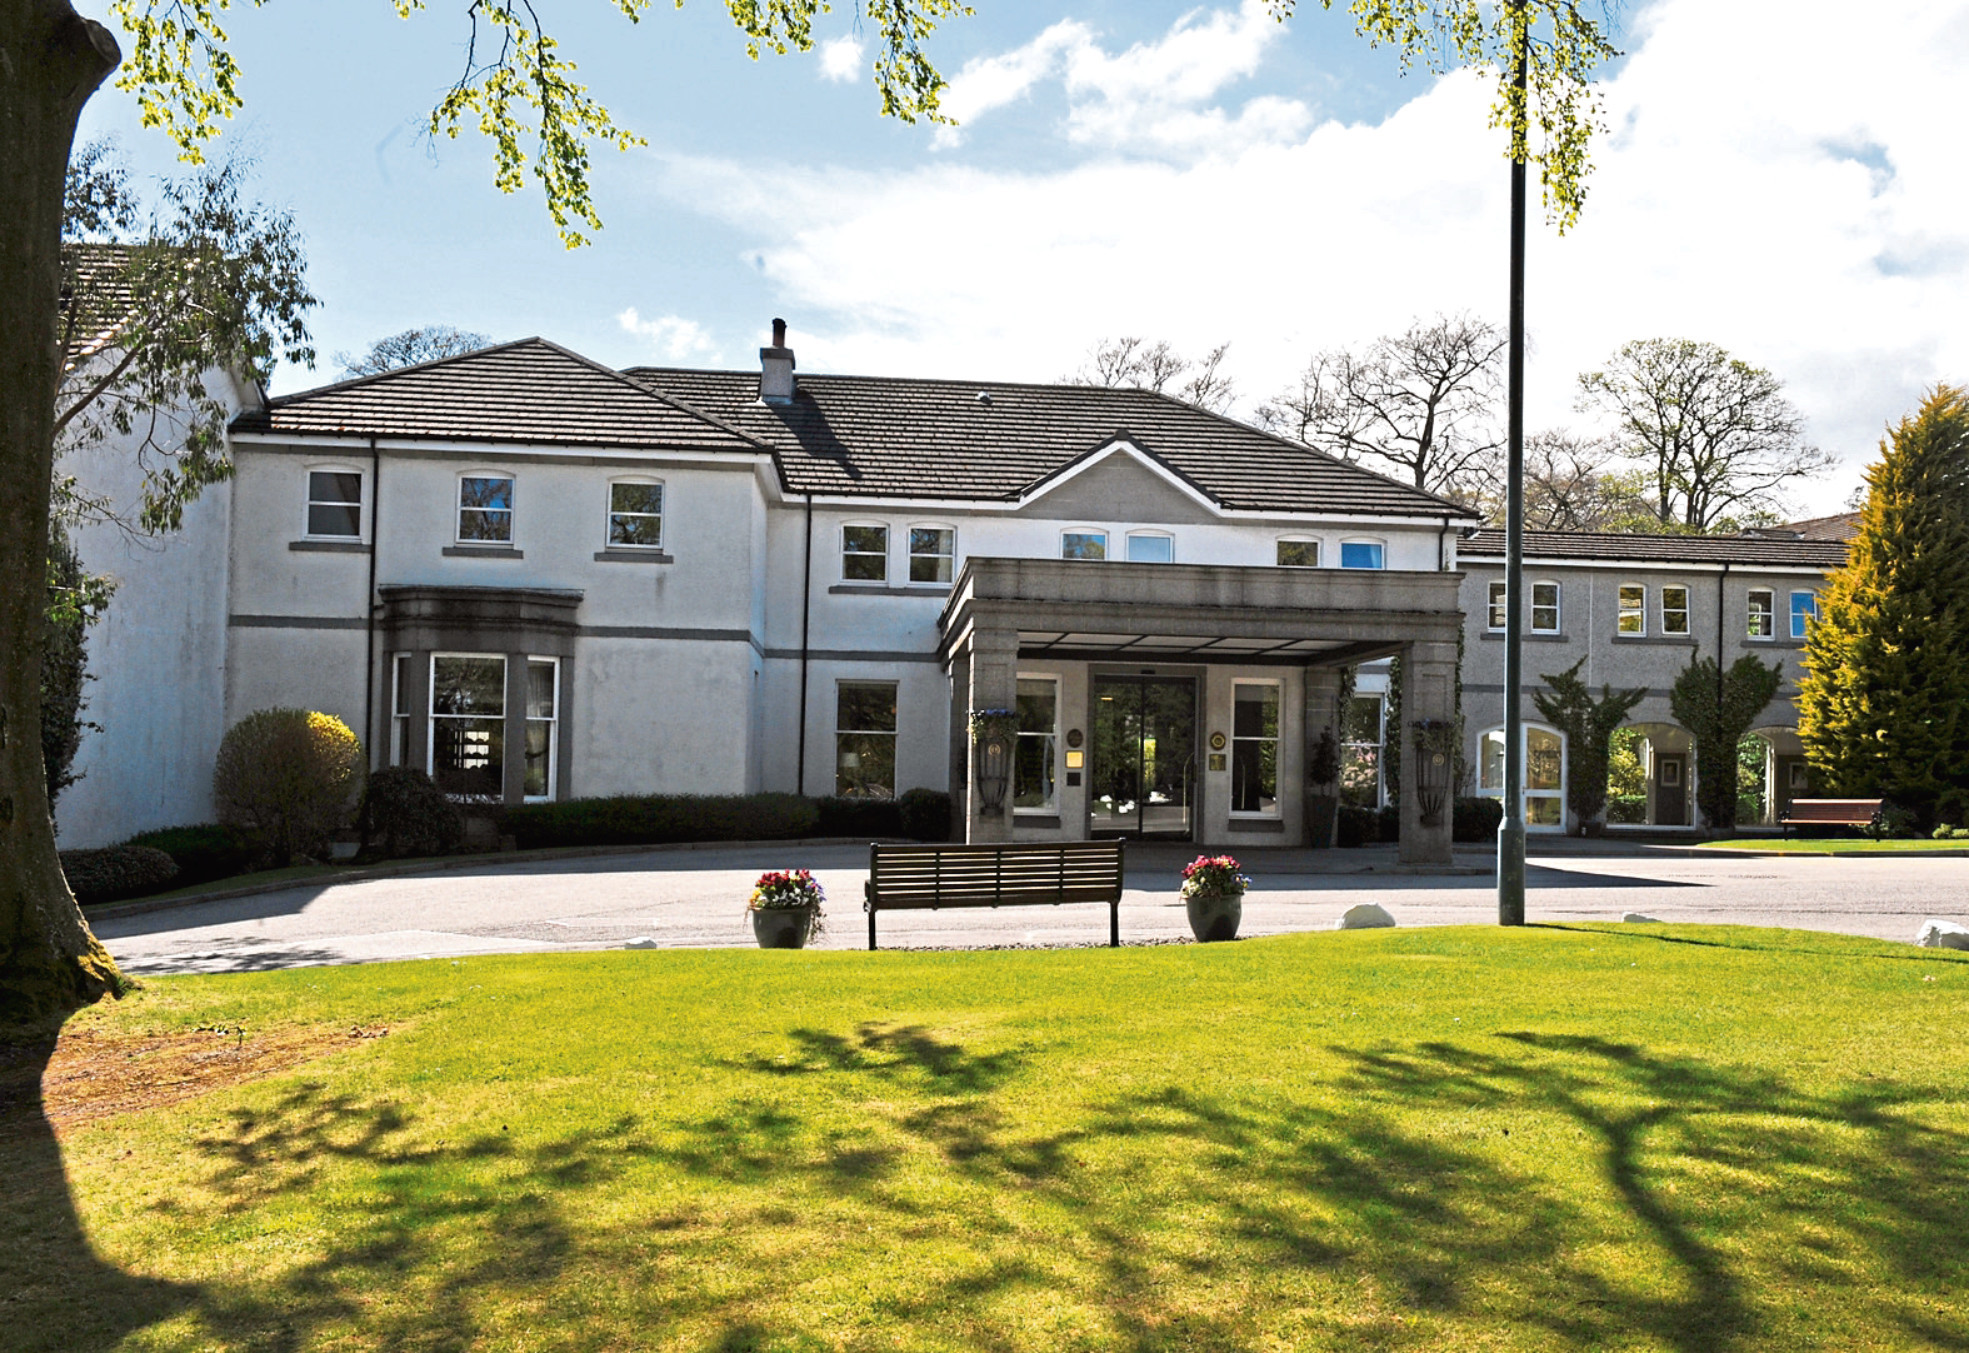 The Marcliffe Hotel